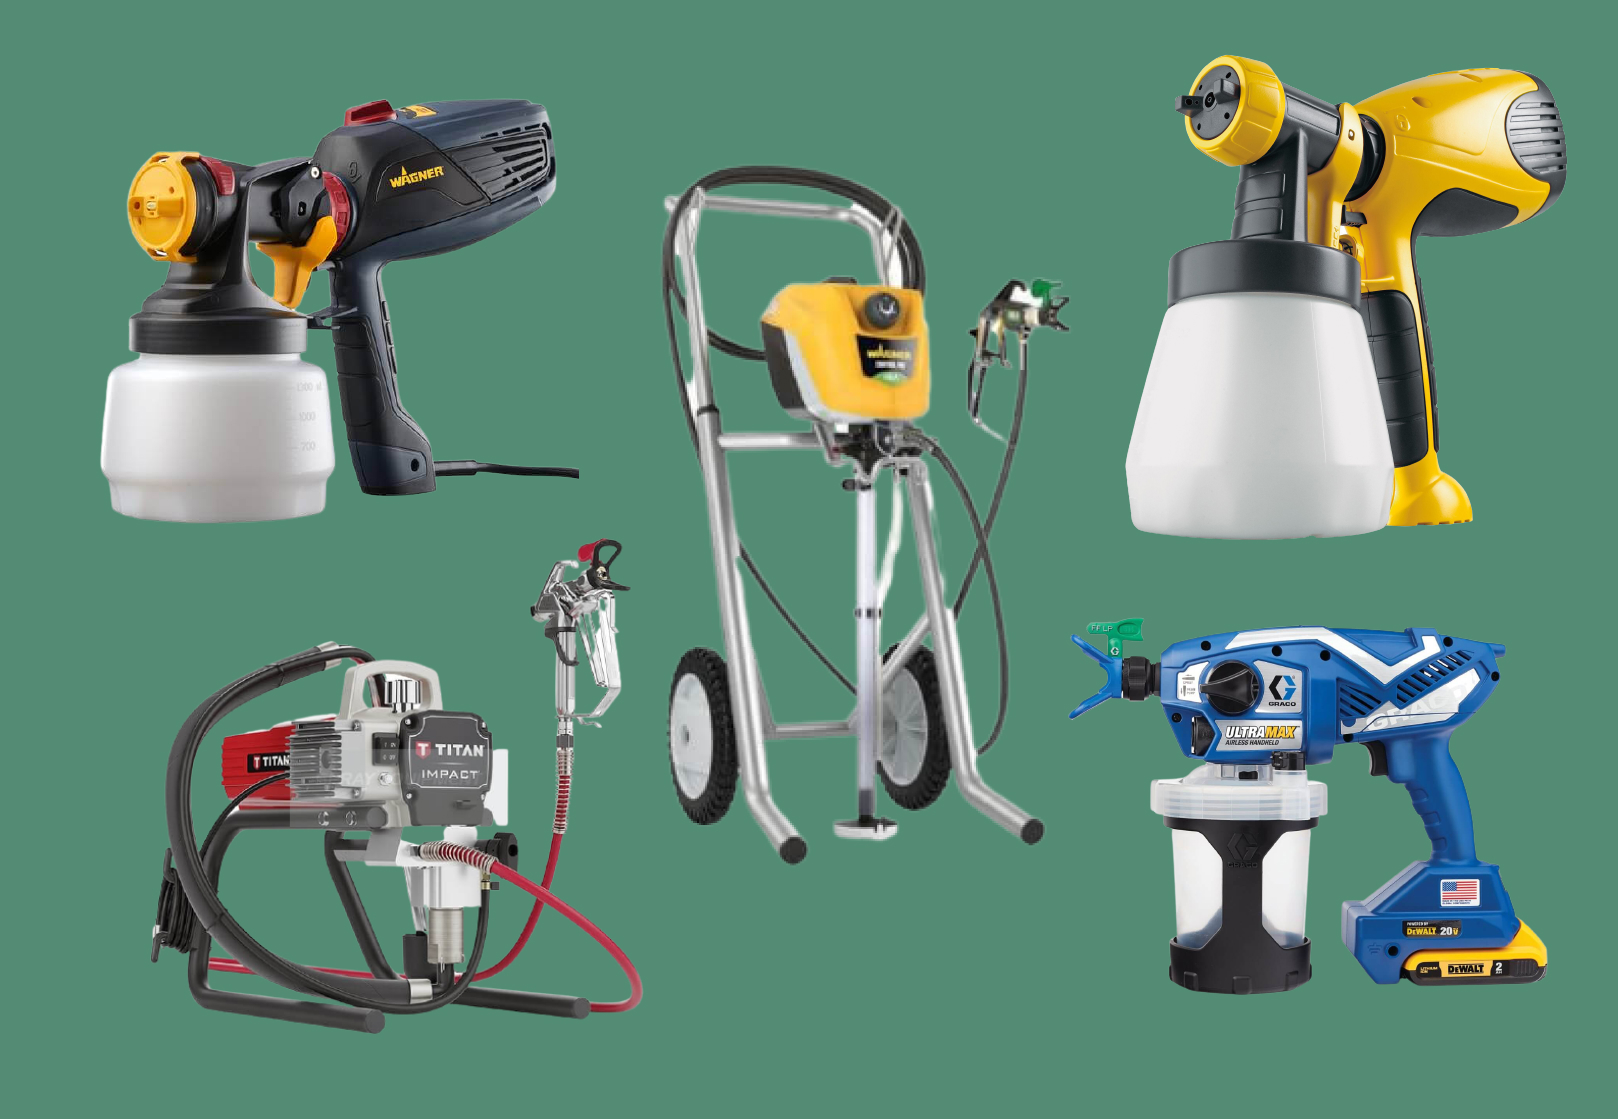 Best 5 Paint sprayers UK Review by professionals for DIYers 2021